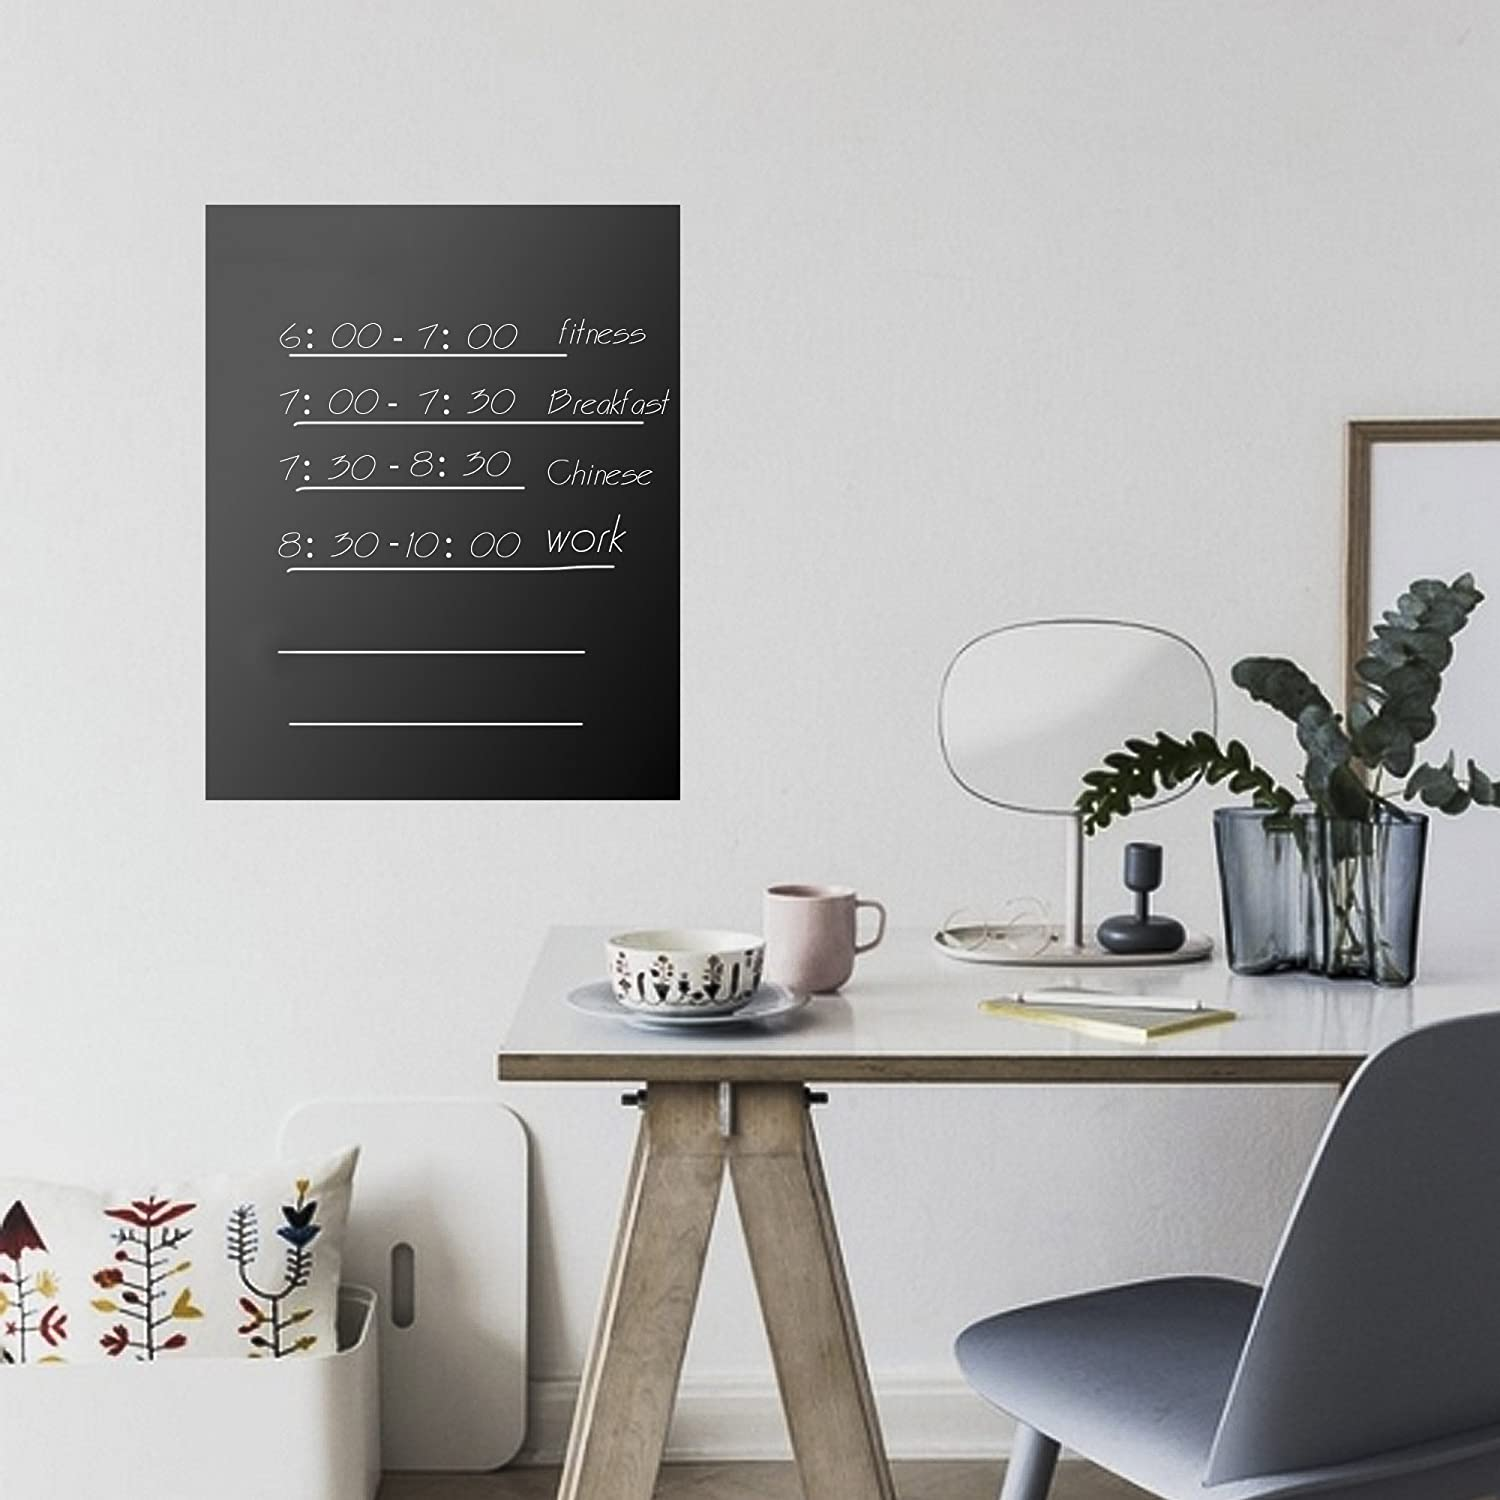 Eachgoo Chalkboard Vinyl Contact Paper,Blackboard Decal Wall Sticker Removable Chalk Paper 17.5